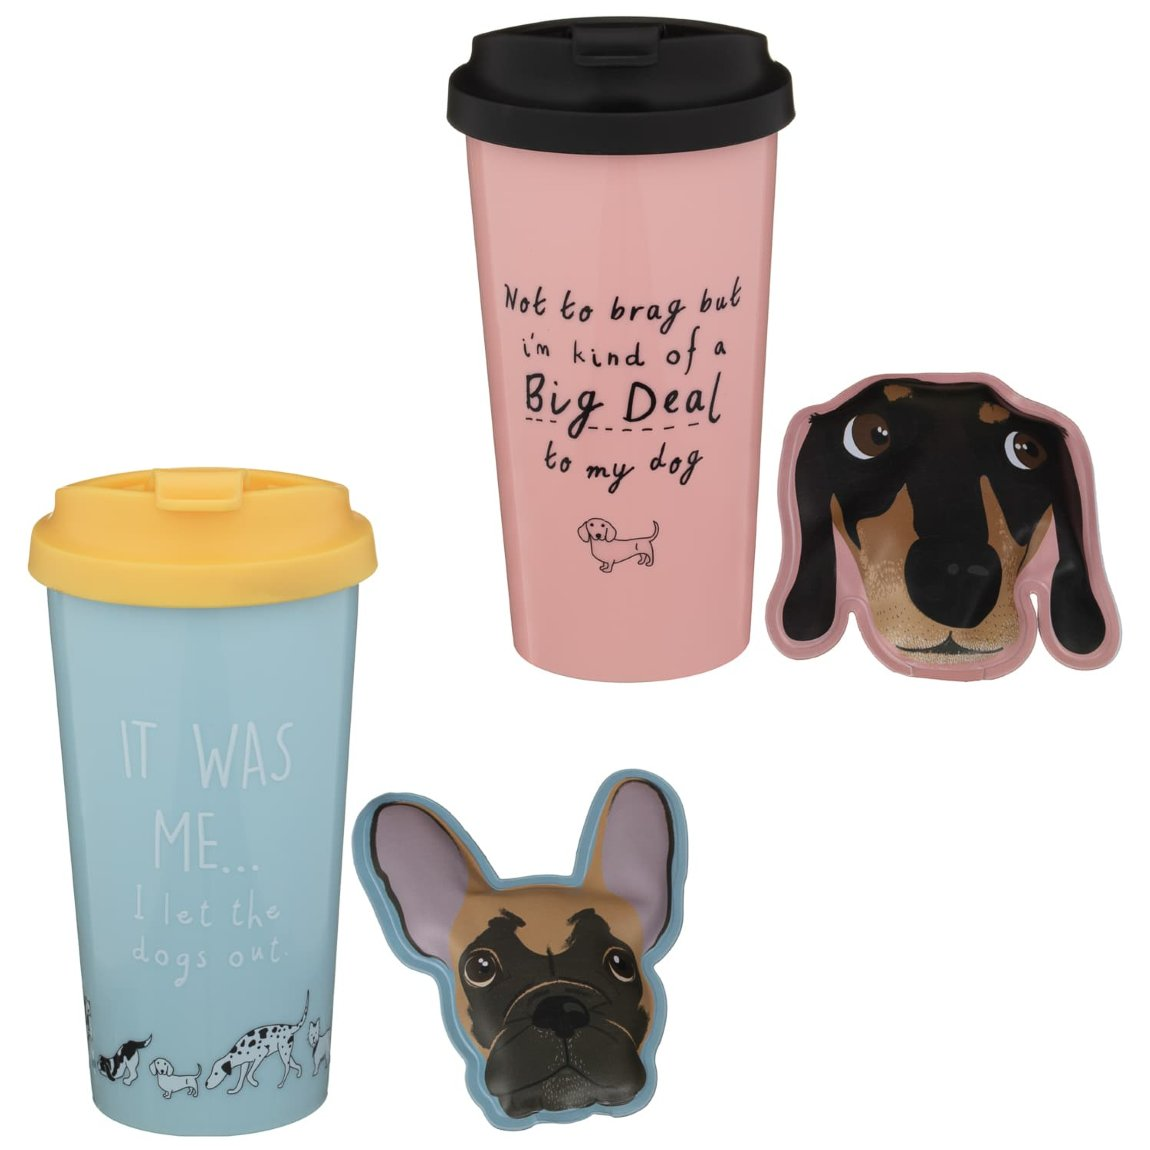 Thermal Mug & Hand Warmer - I Let the Dogs Out